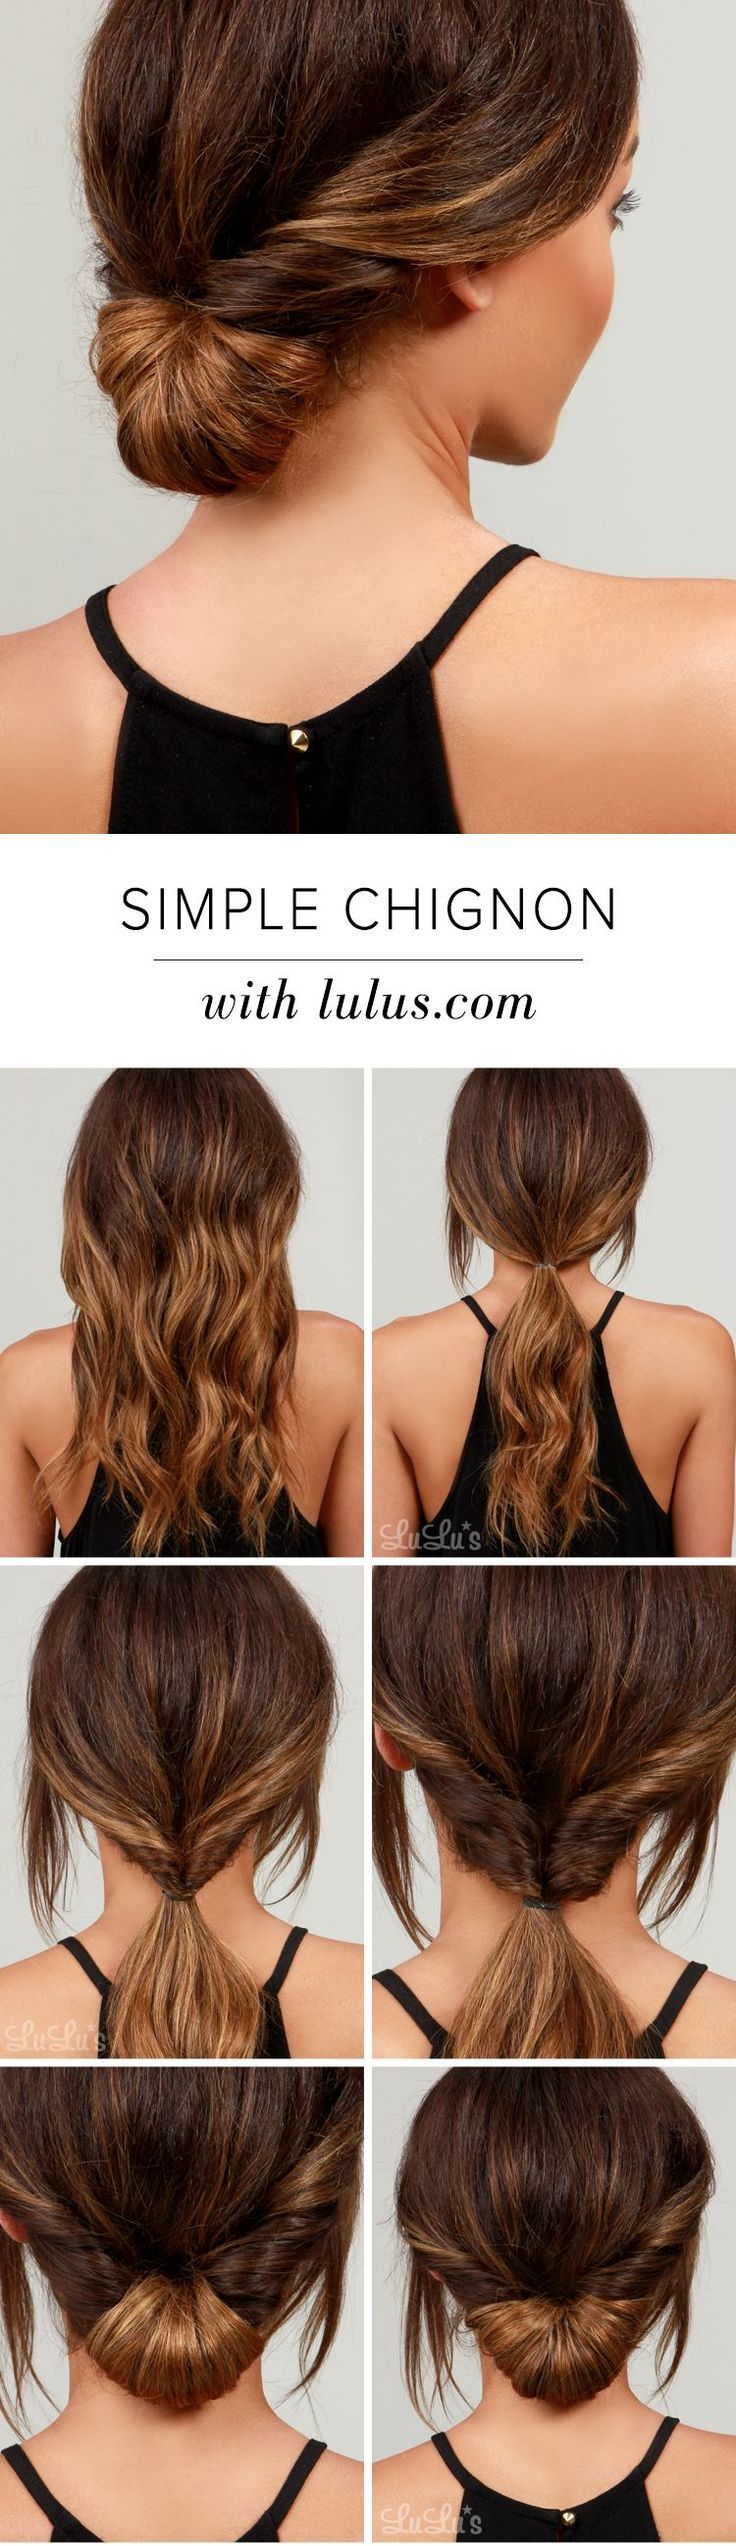 LuLu*s How-To: Simple Chignon Hair Tutorial (Lulus.com Fashion Blog